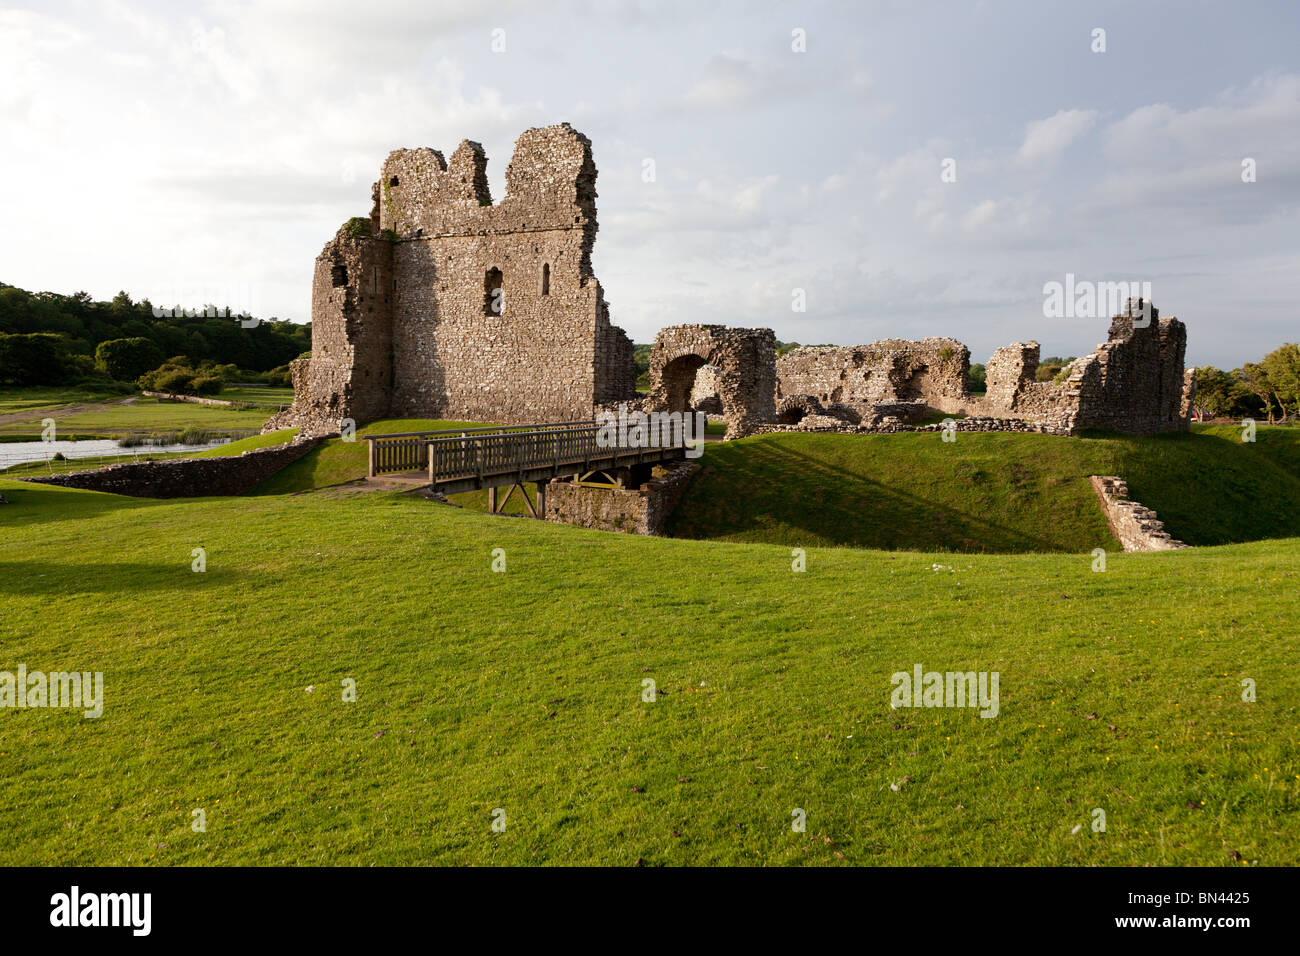 Ogmore Castle, a ruined castle near the village of Ogmore in South Wales - Stock Image